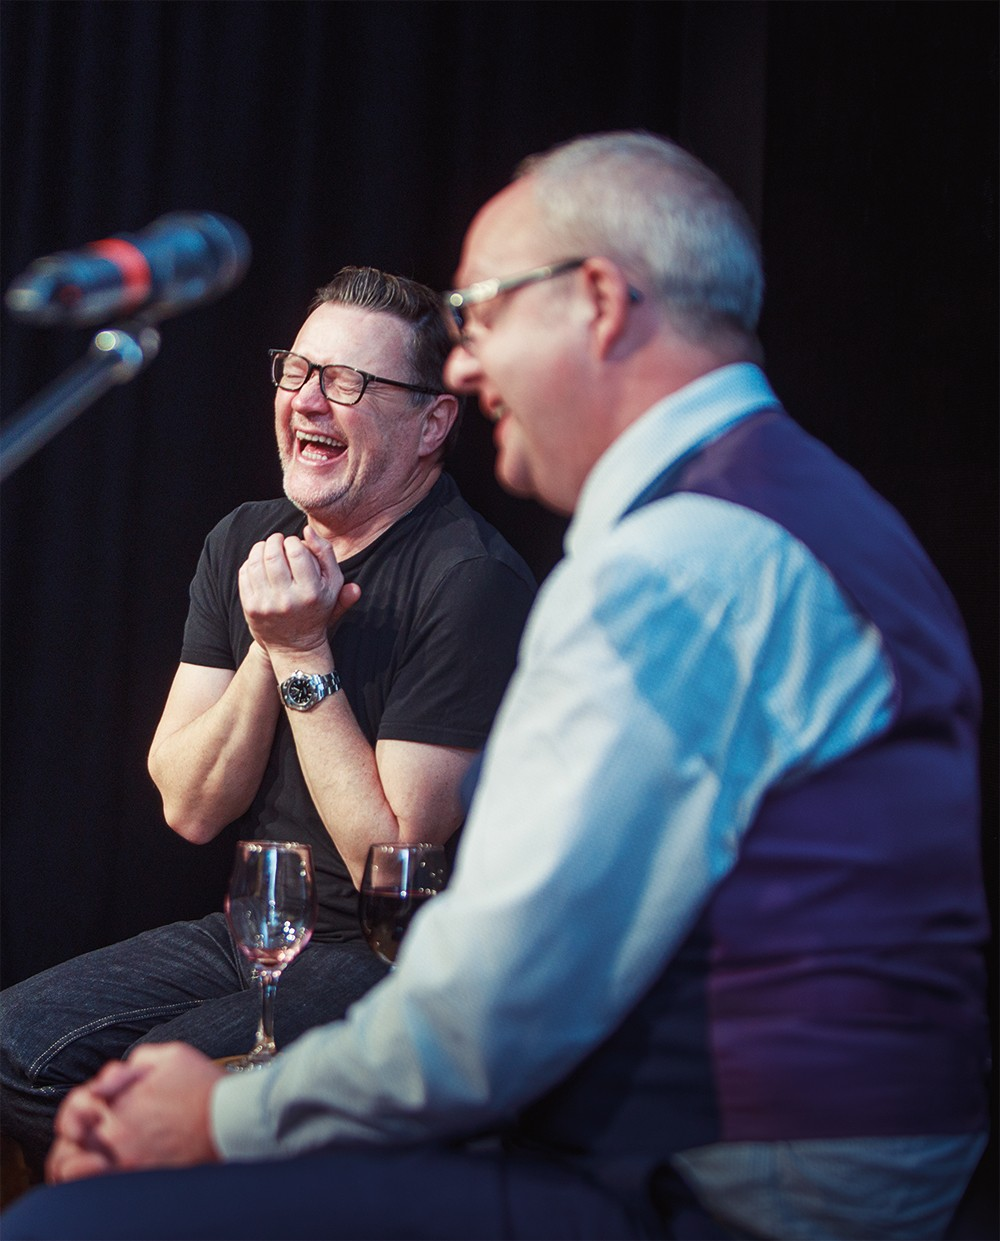 Ian Puleston-Davies with Ashley Fulwood together at an event in Halifax in 2018.